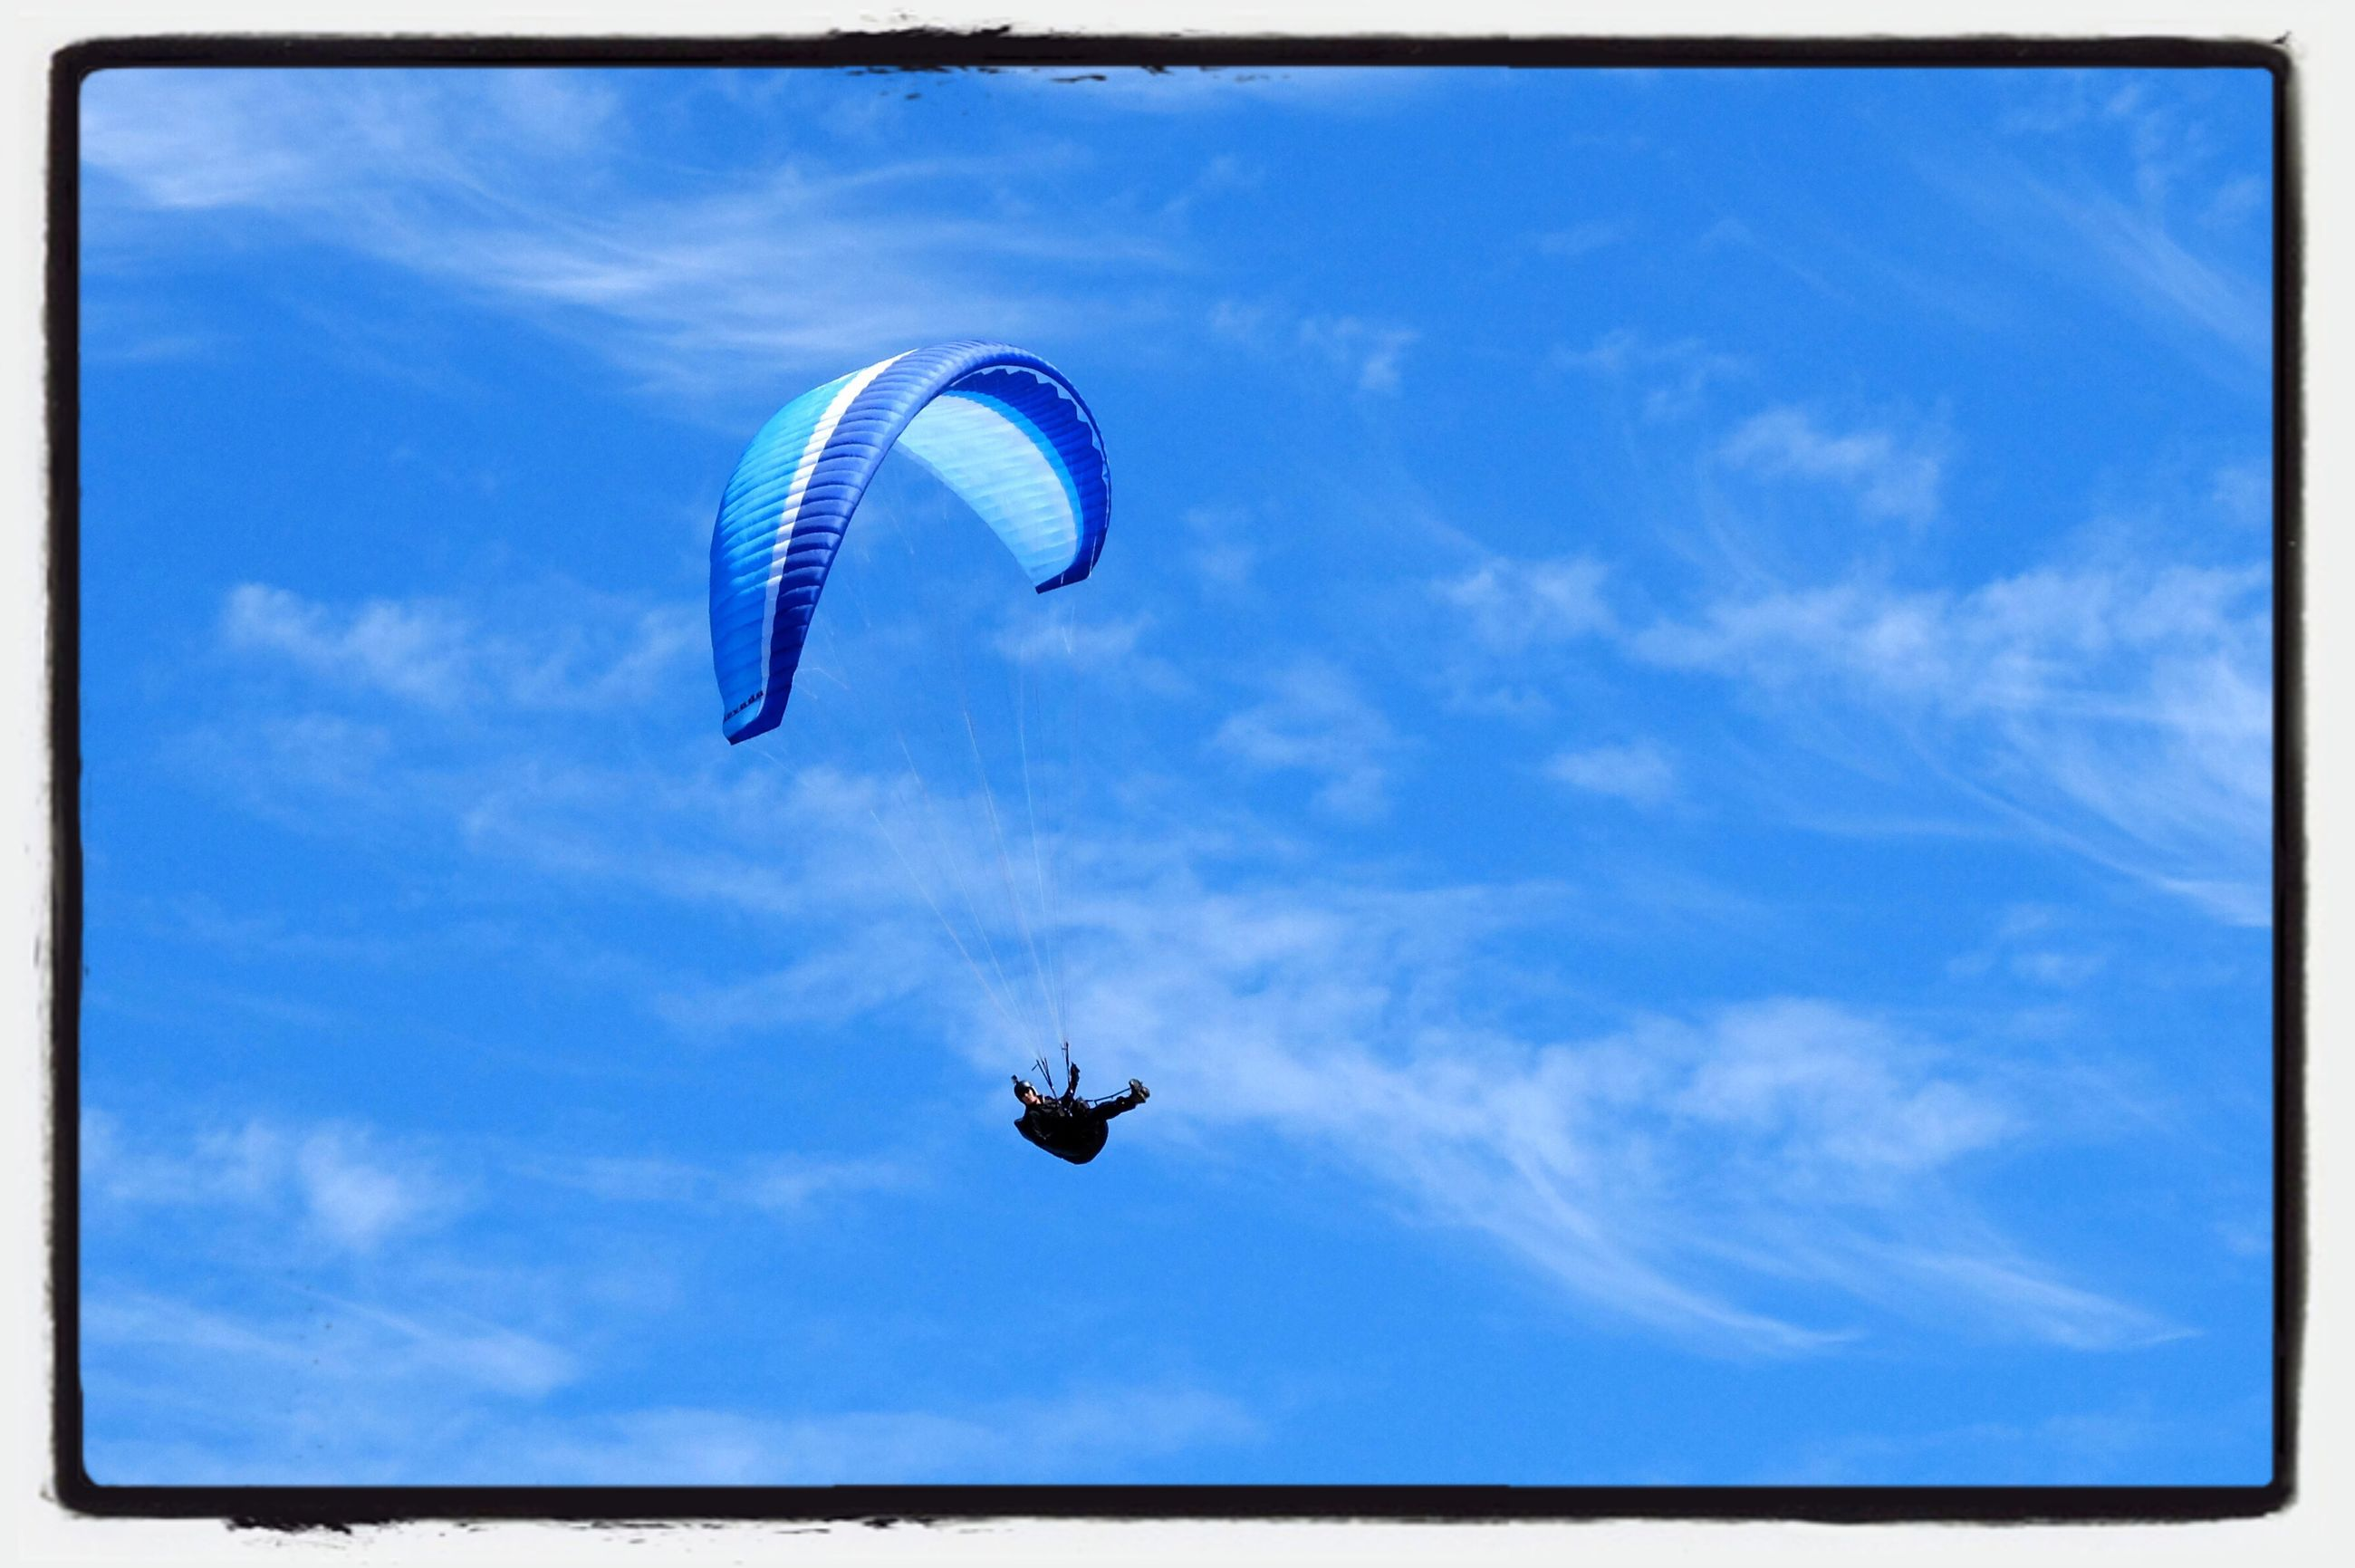 flying, mid-air, parachute, low angle view, extreme sports, blue, adventure, sky, transportation, paragliding, sport, leisure activity, exhilaration, cloud - sky, fun, freedom, motion, unrecognizable person